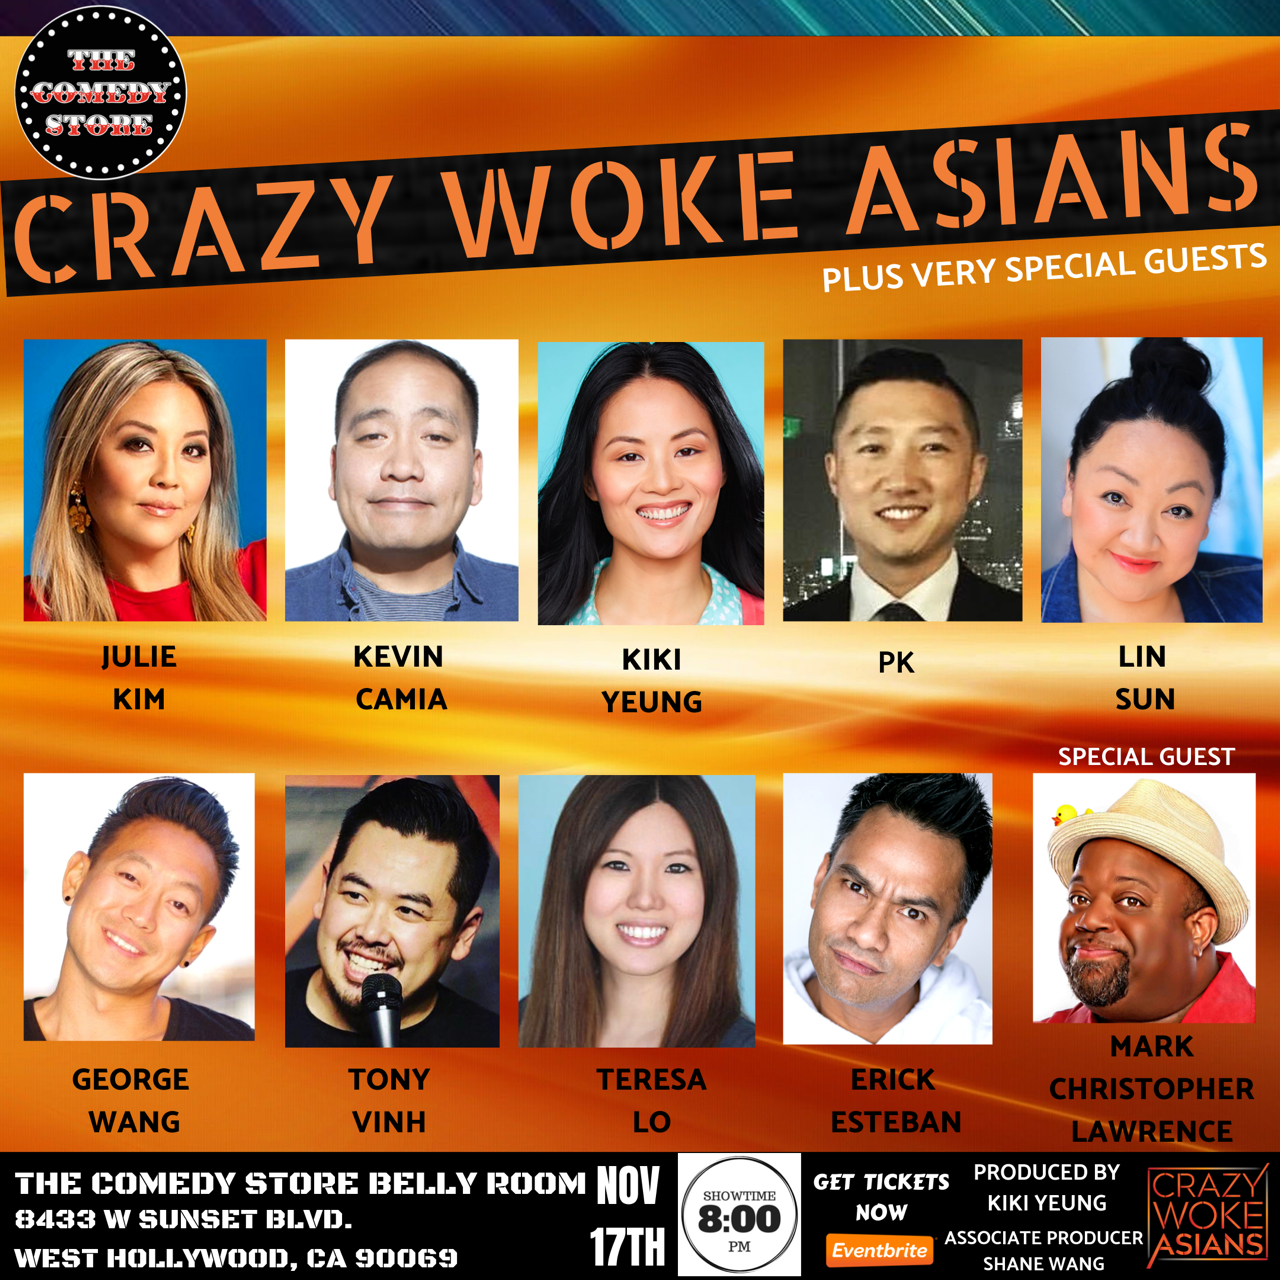 Crazy Woke Asians